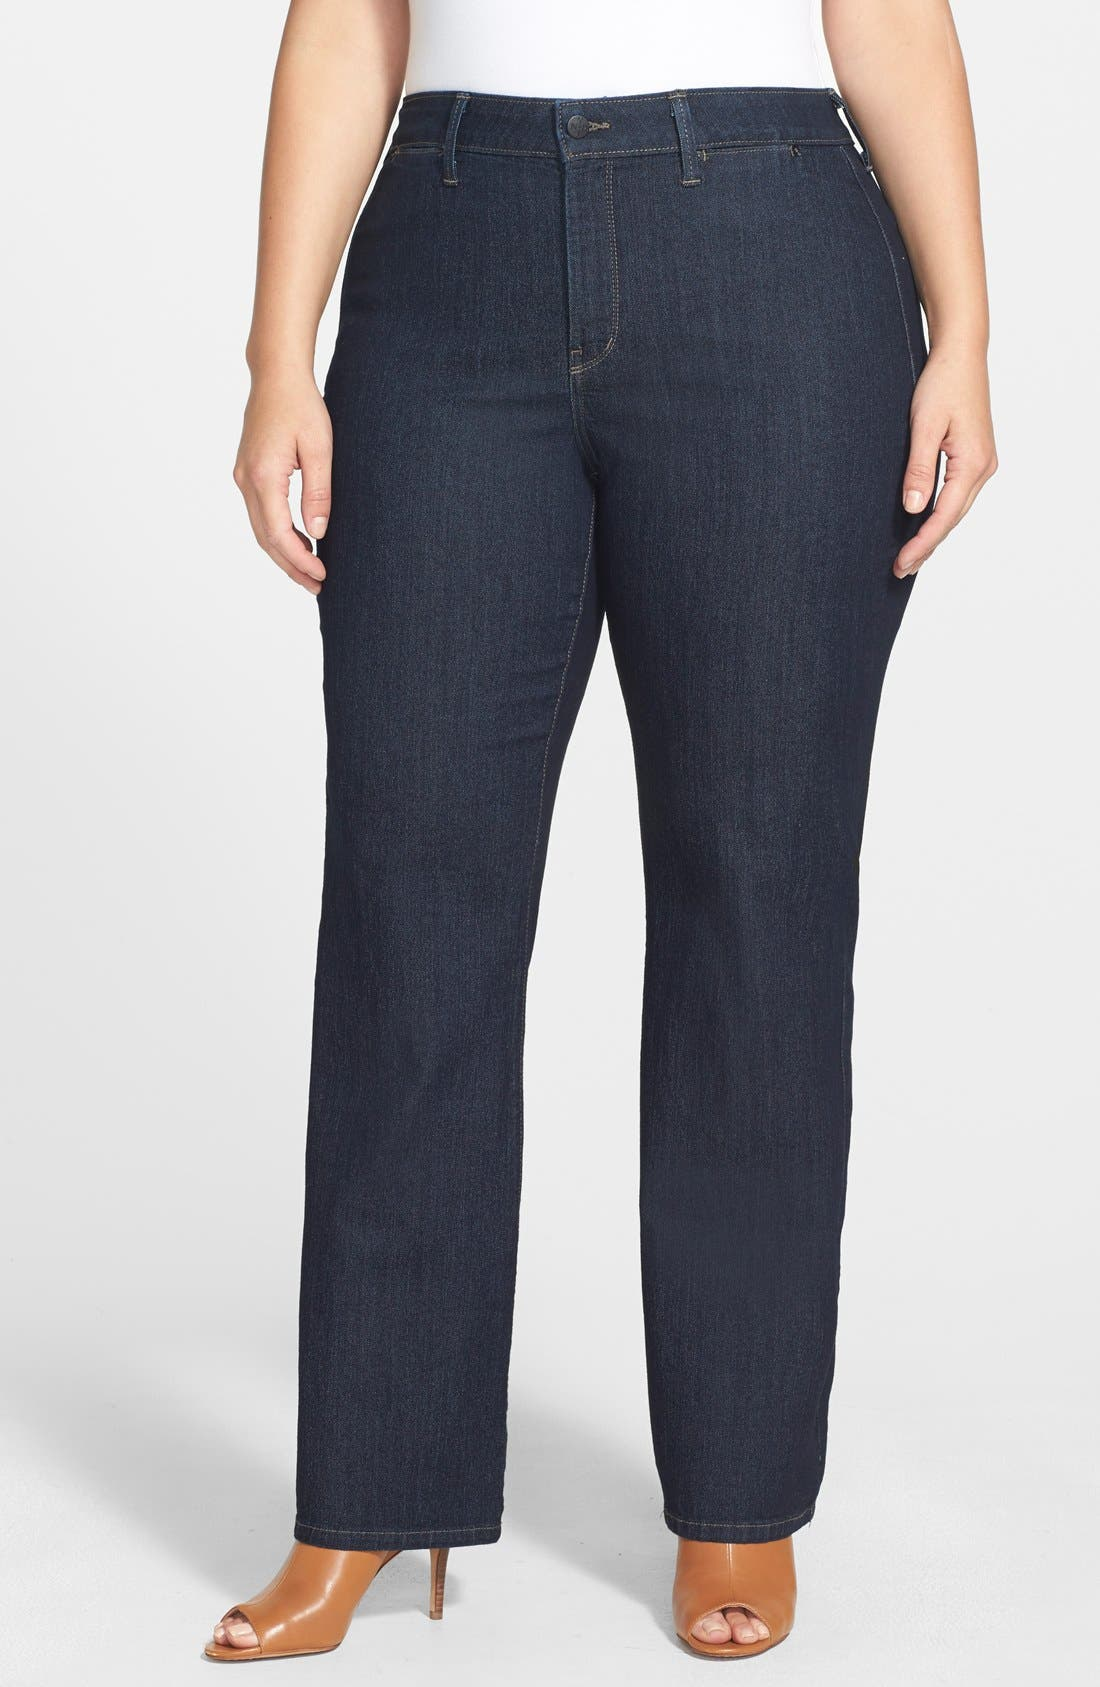 'Isabella' High Rise Stretch Trouser Jeans,                         Main,                         color, DARK ENZYME